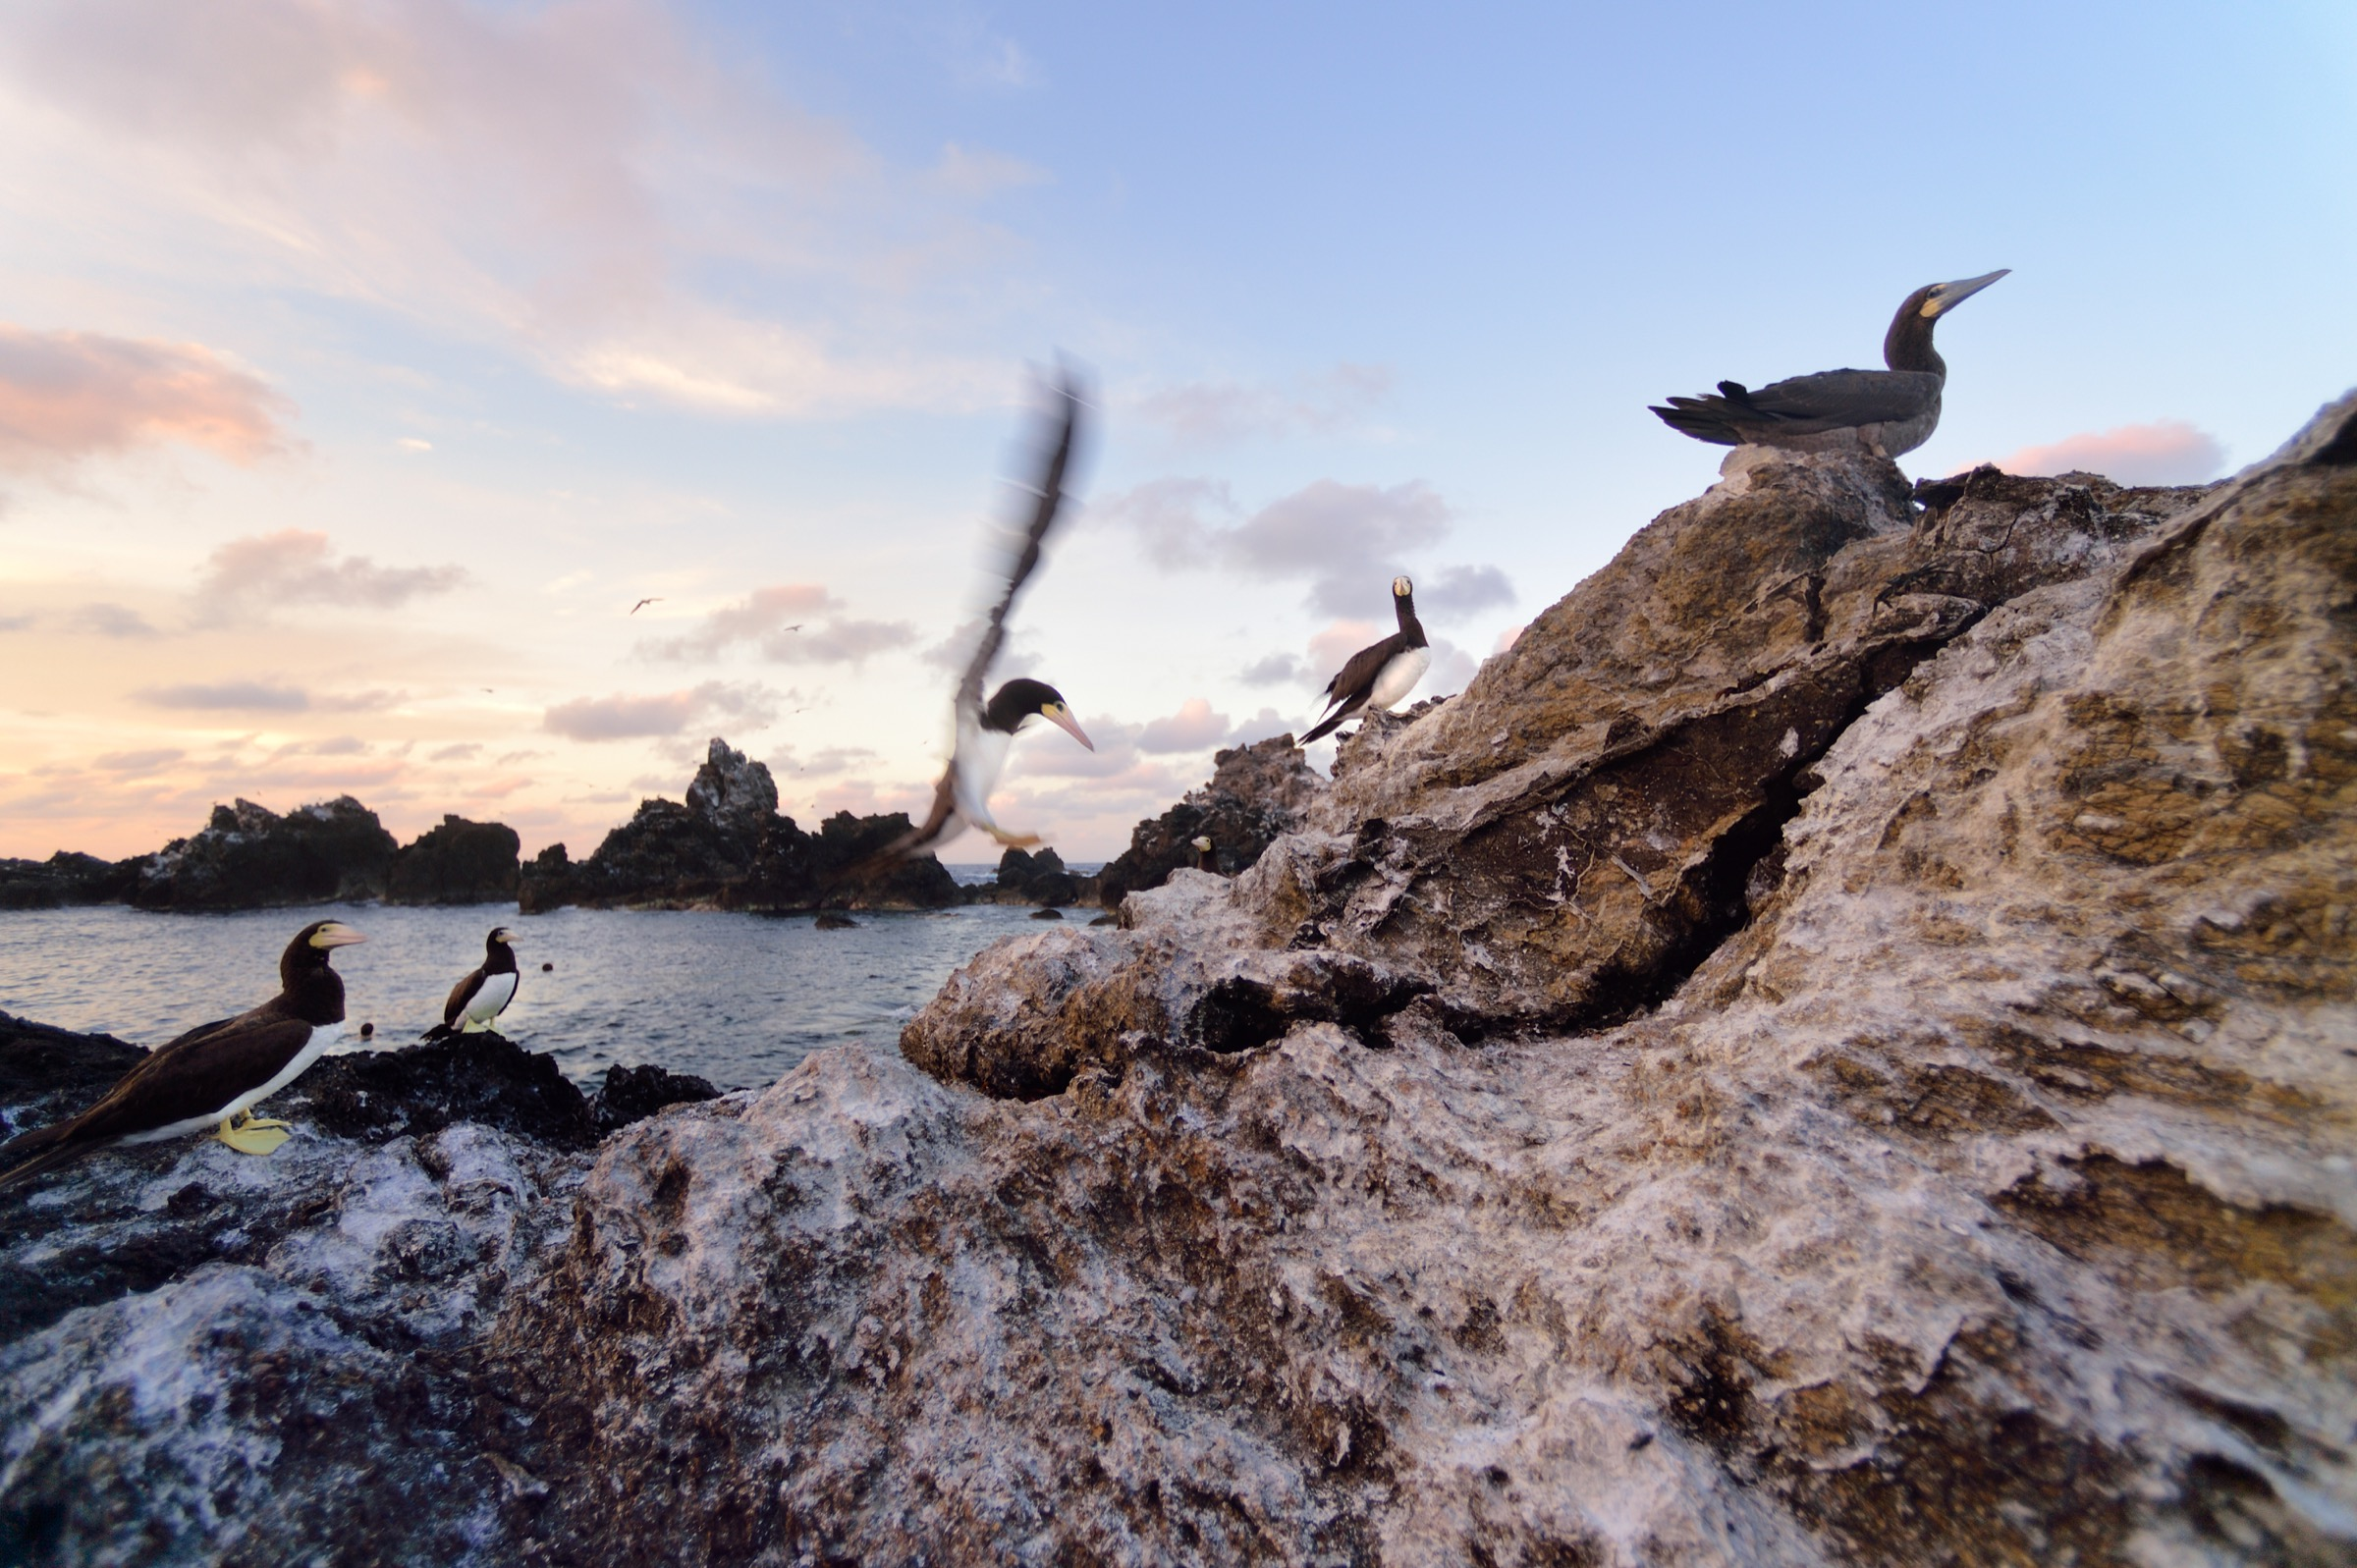 Resident brown boobies (Sula leucogaster) defend their nests on the rocks of Saint Peter and Saint Paul Archipelago. Photograph by Solvin Zankl